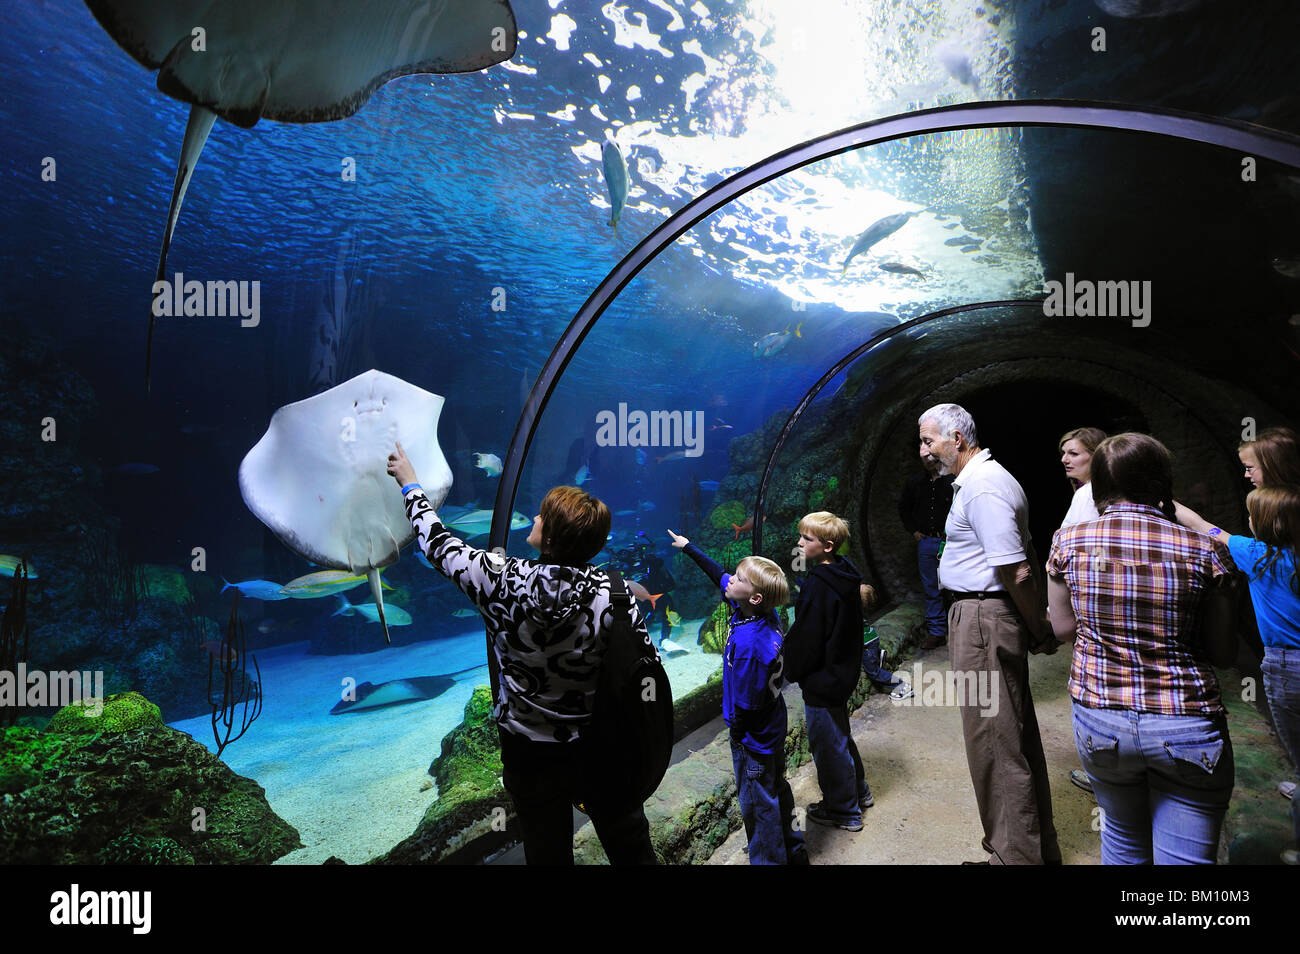 Aquarium tunnel tank, Denver, Colorado - Stock Image